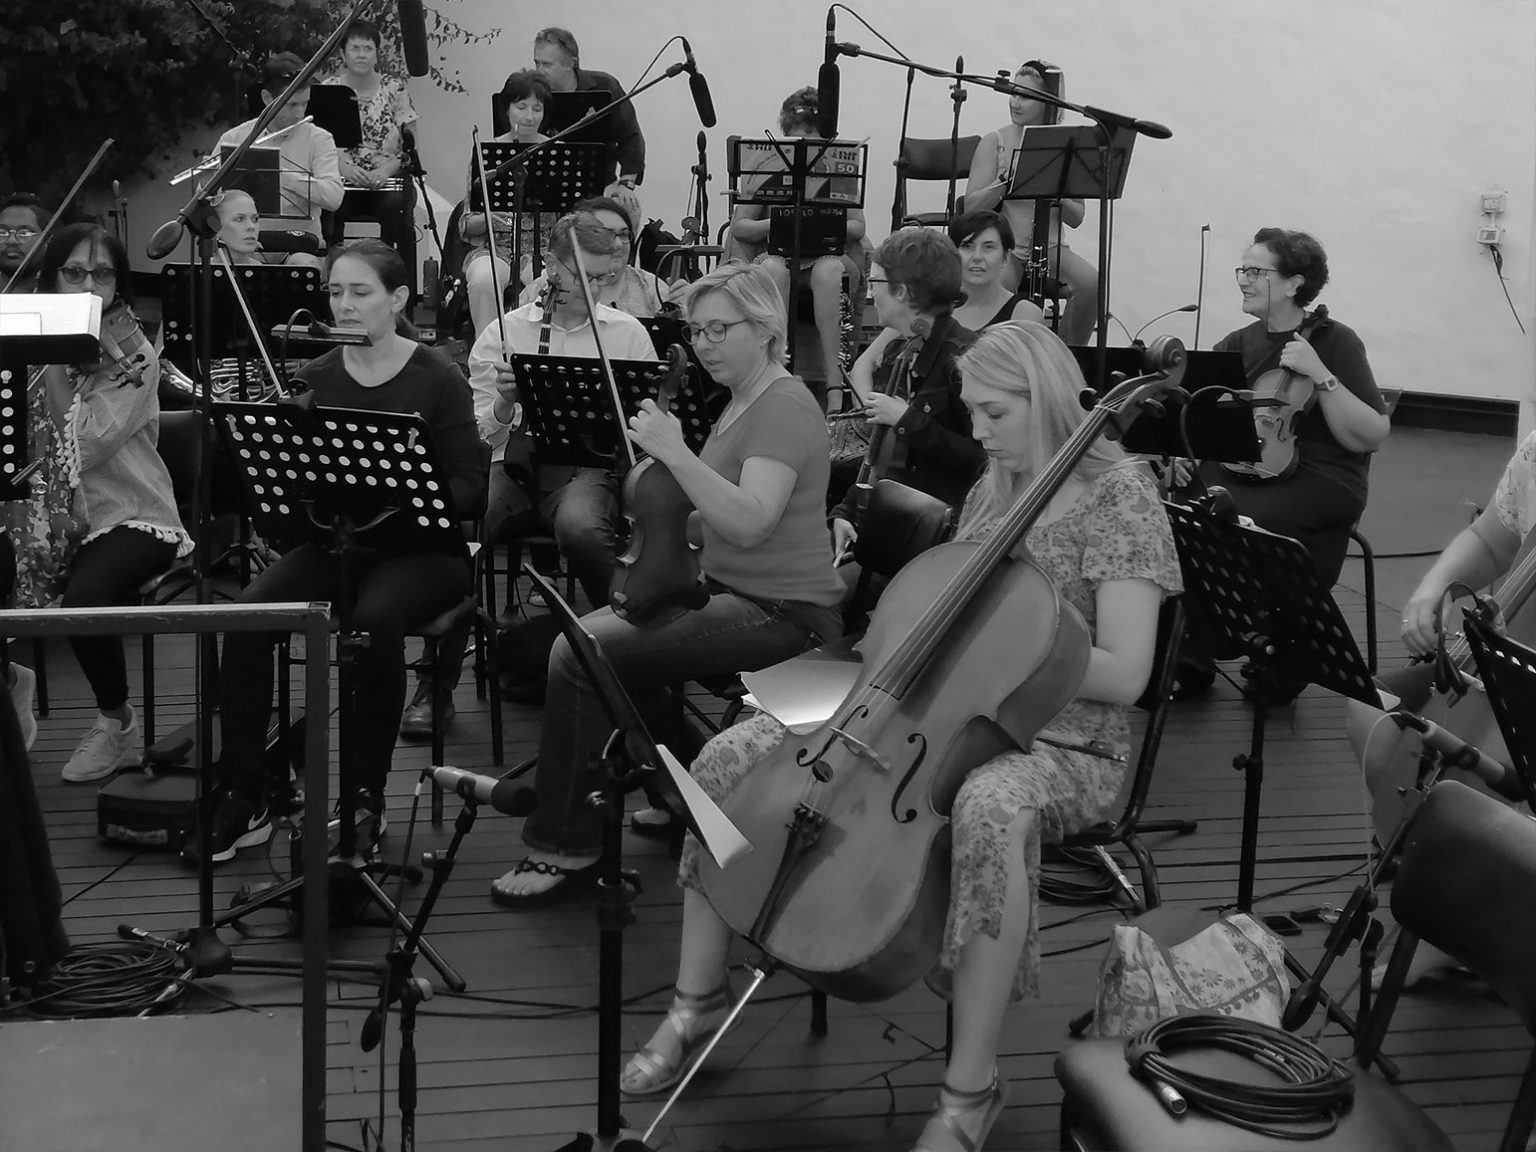 Shades-of-Africa-05-Oude-Libertas-Rehearsals